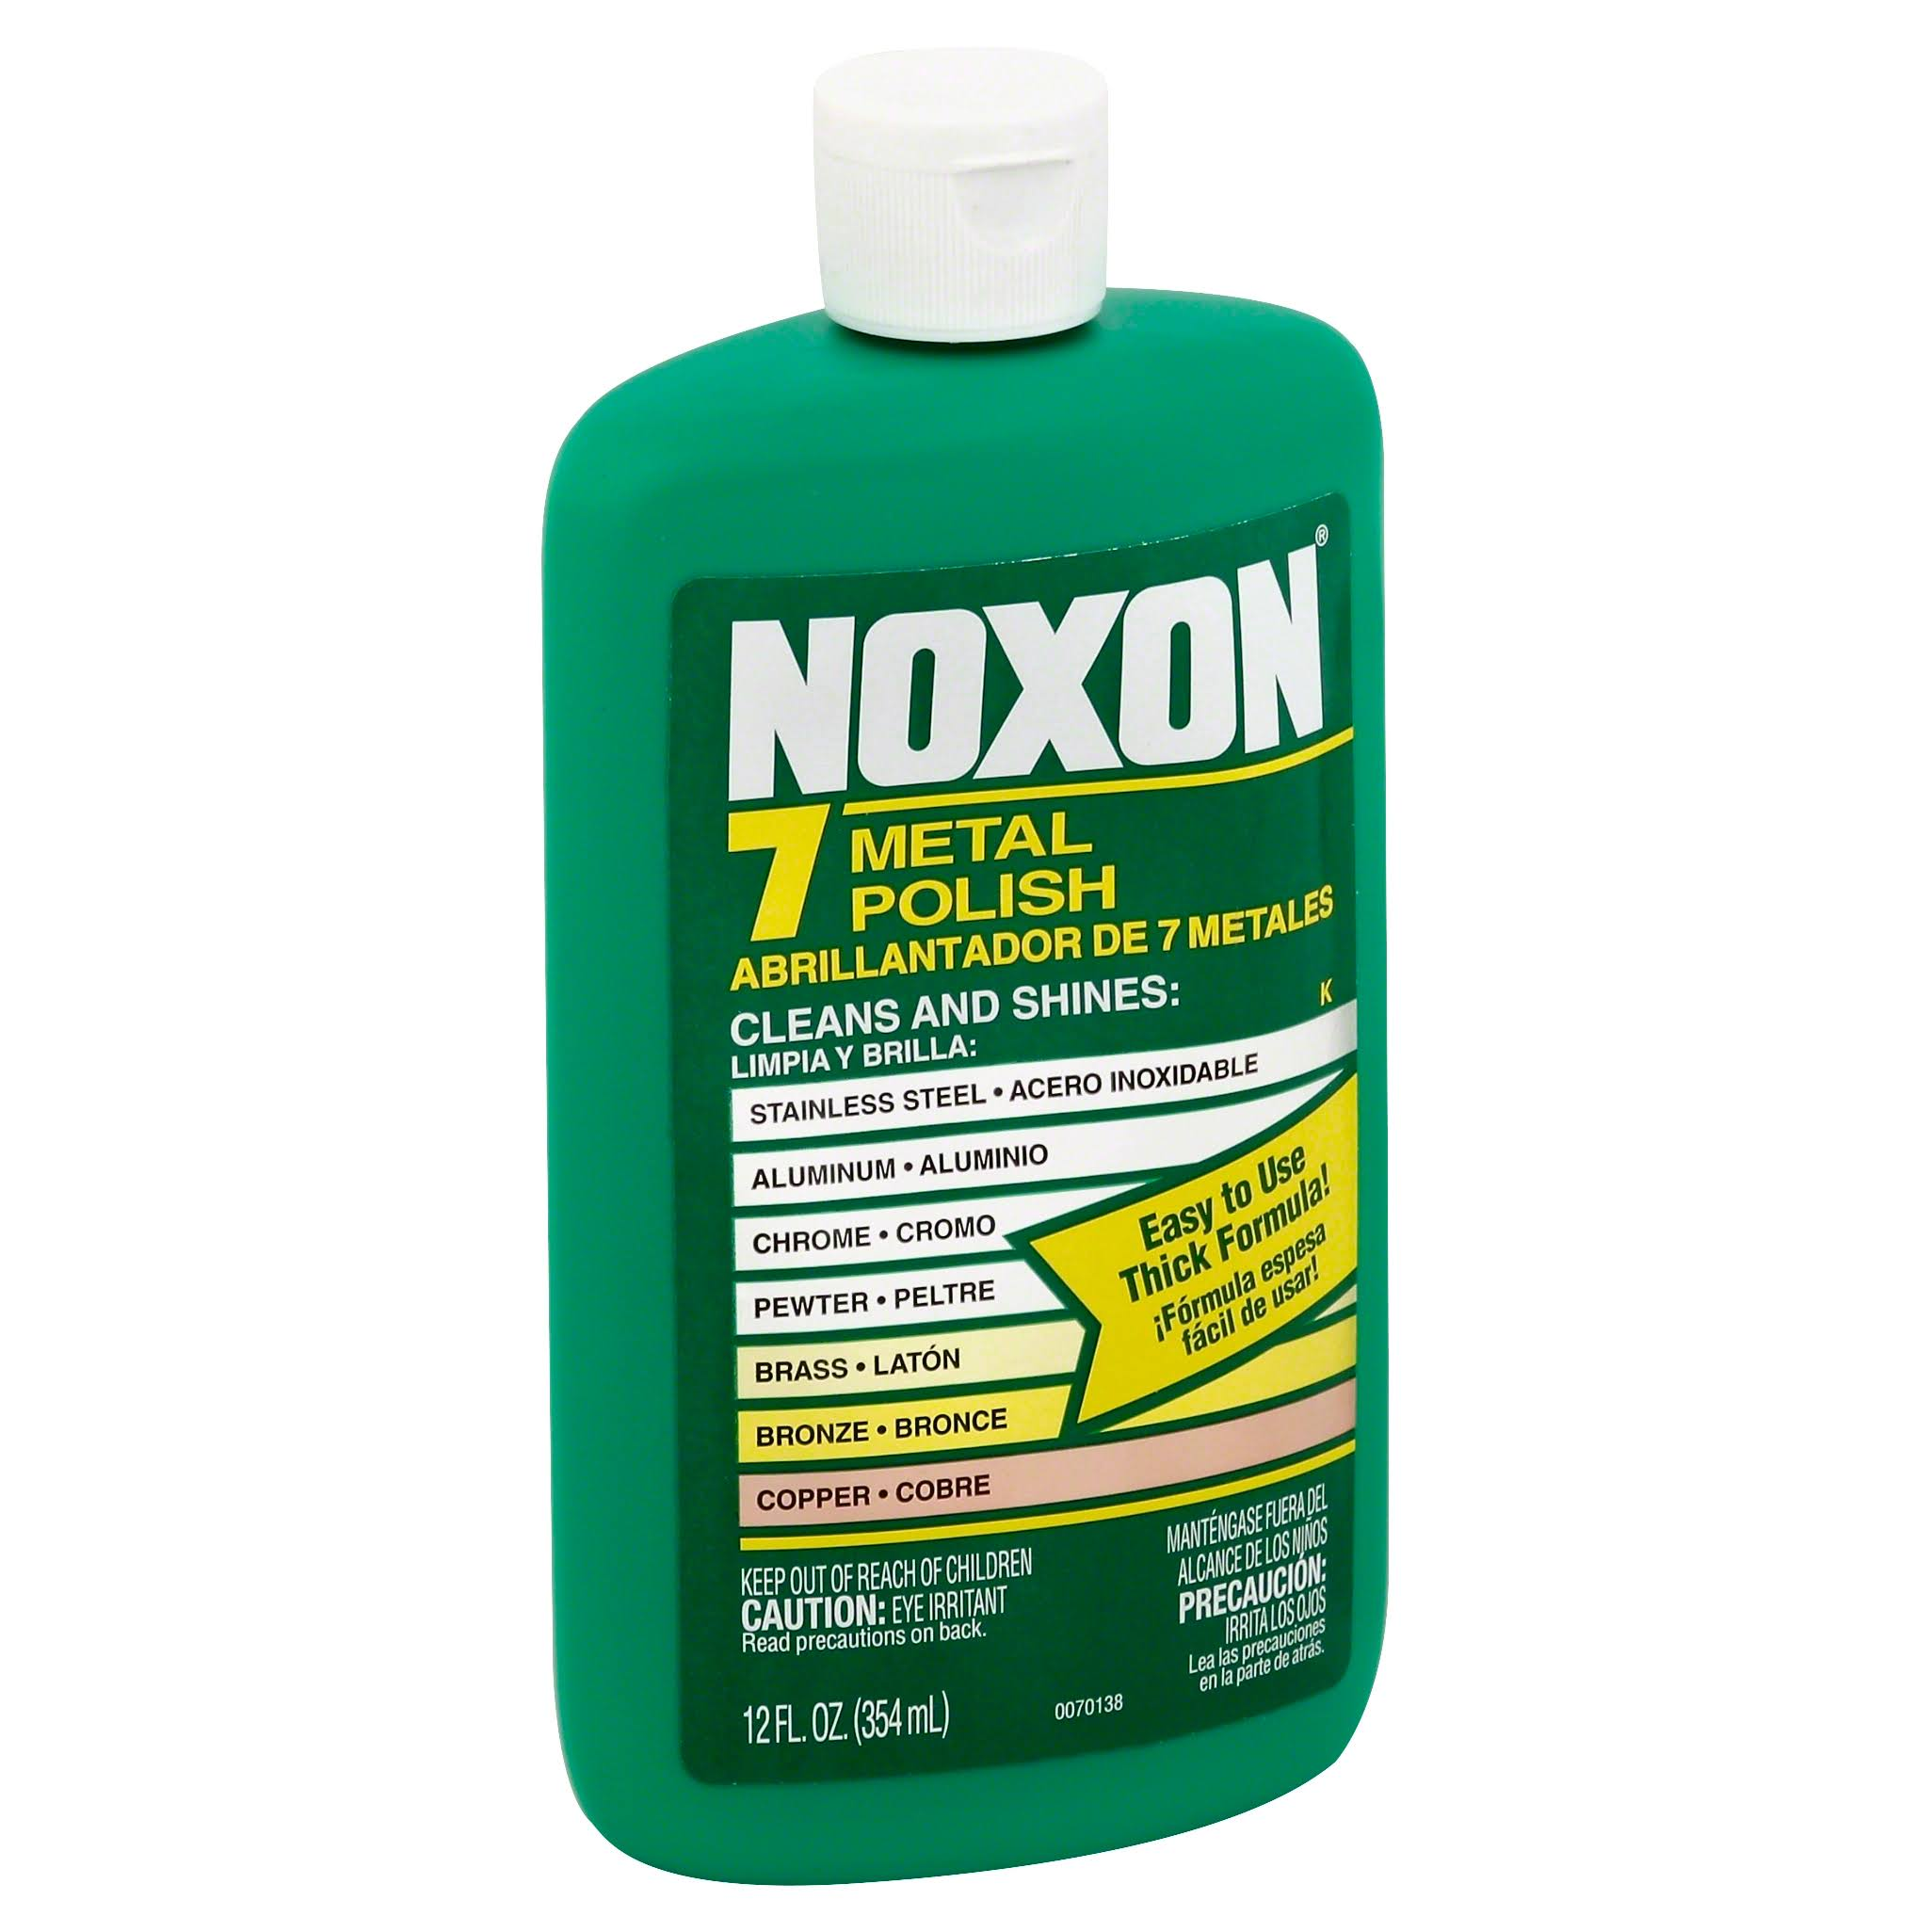 Noxon 7 Metal Polish - 354ml